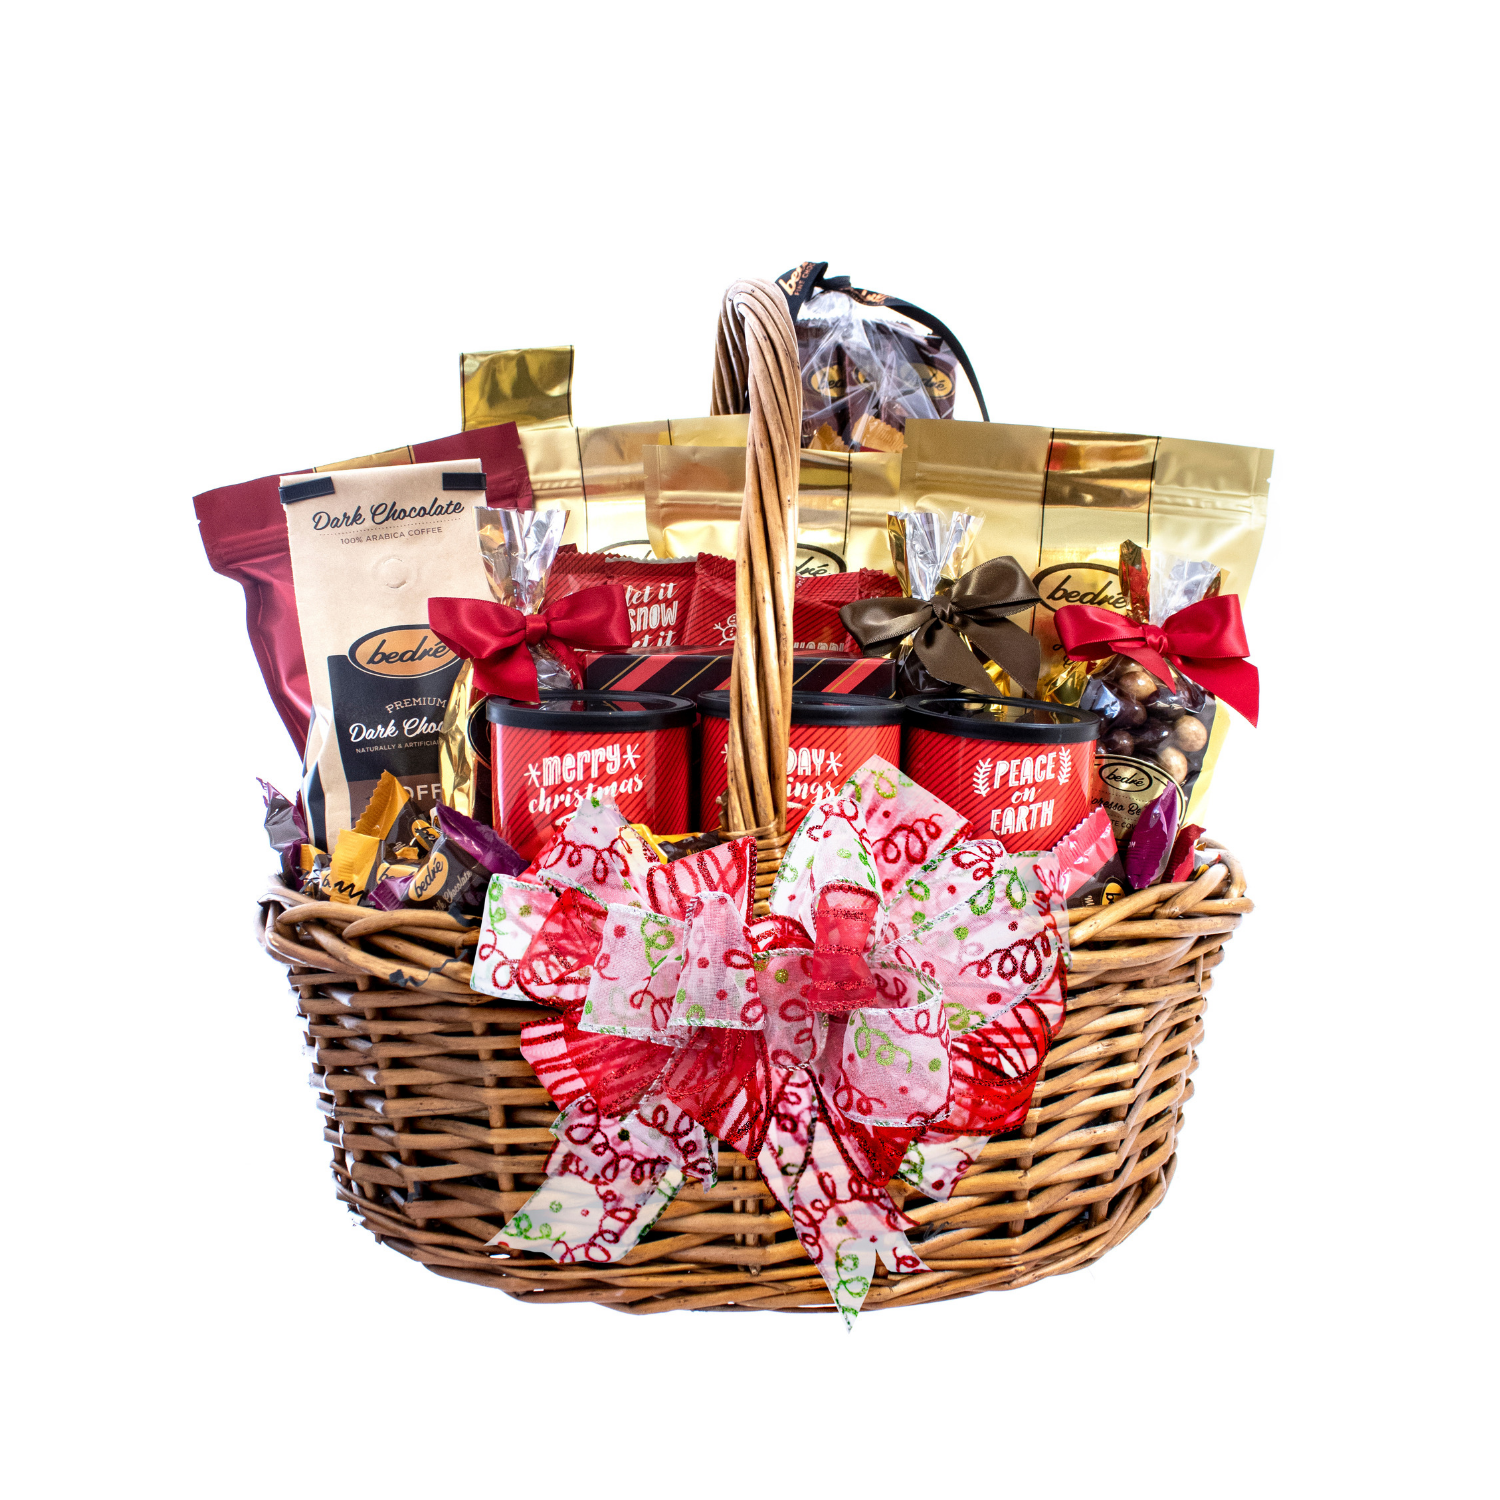 Bedre Classic Christmas Basket